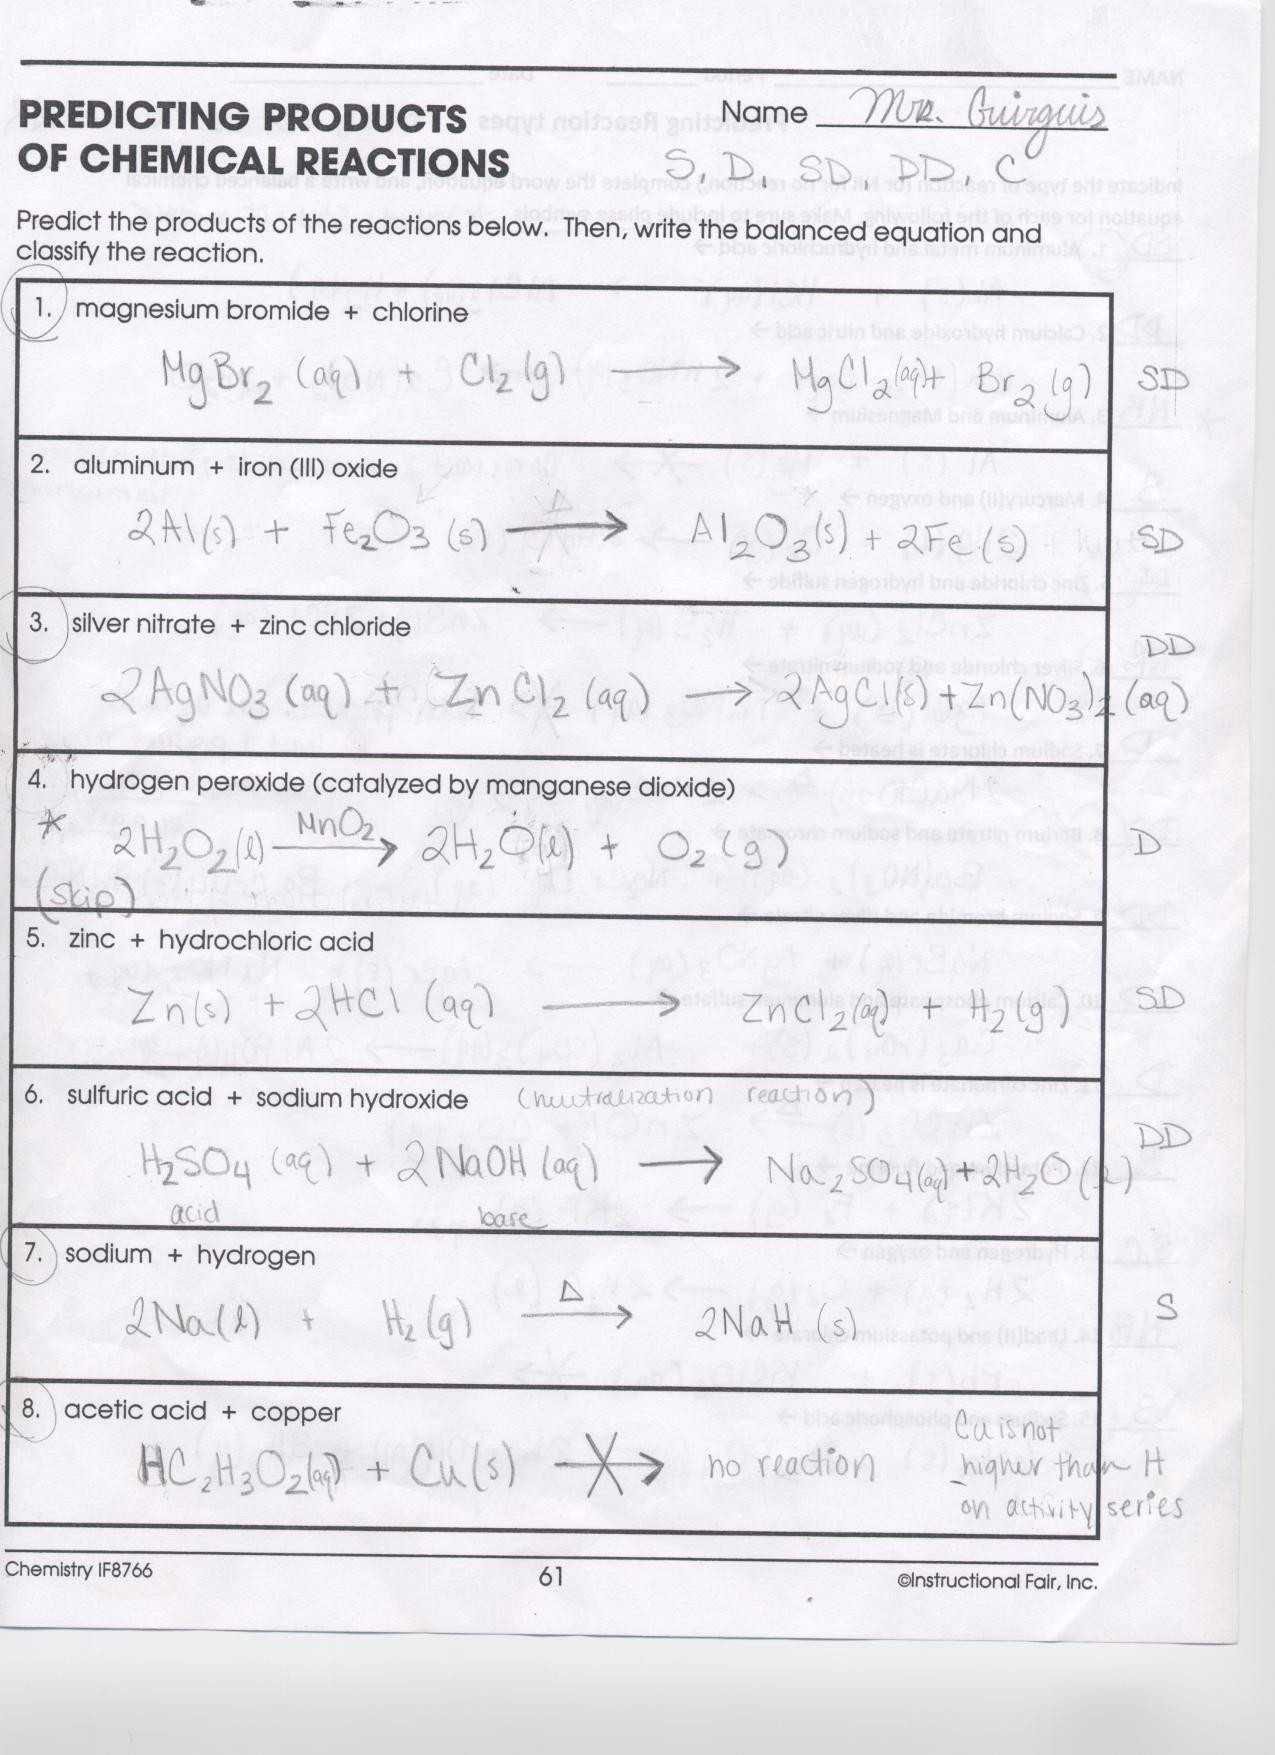 Neutralization Reactions Worksheet Along with Oxidation Reduction Reactions Worksheet Gallery Worksheet for Kids